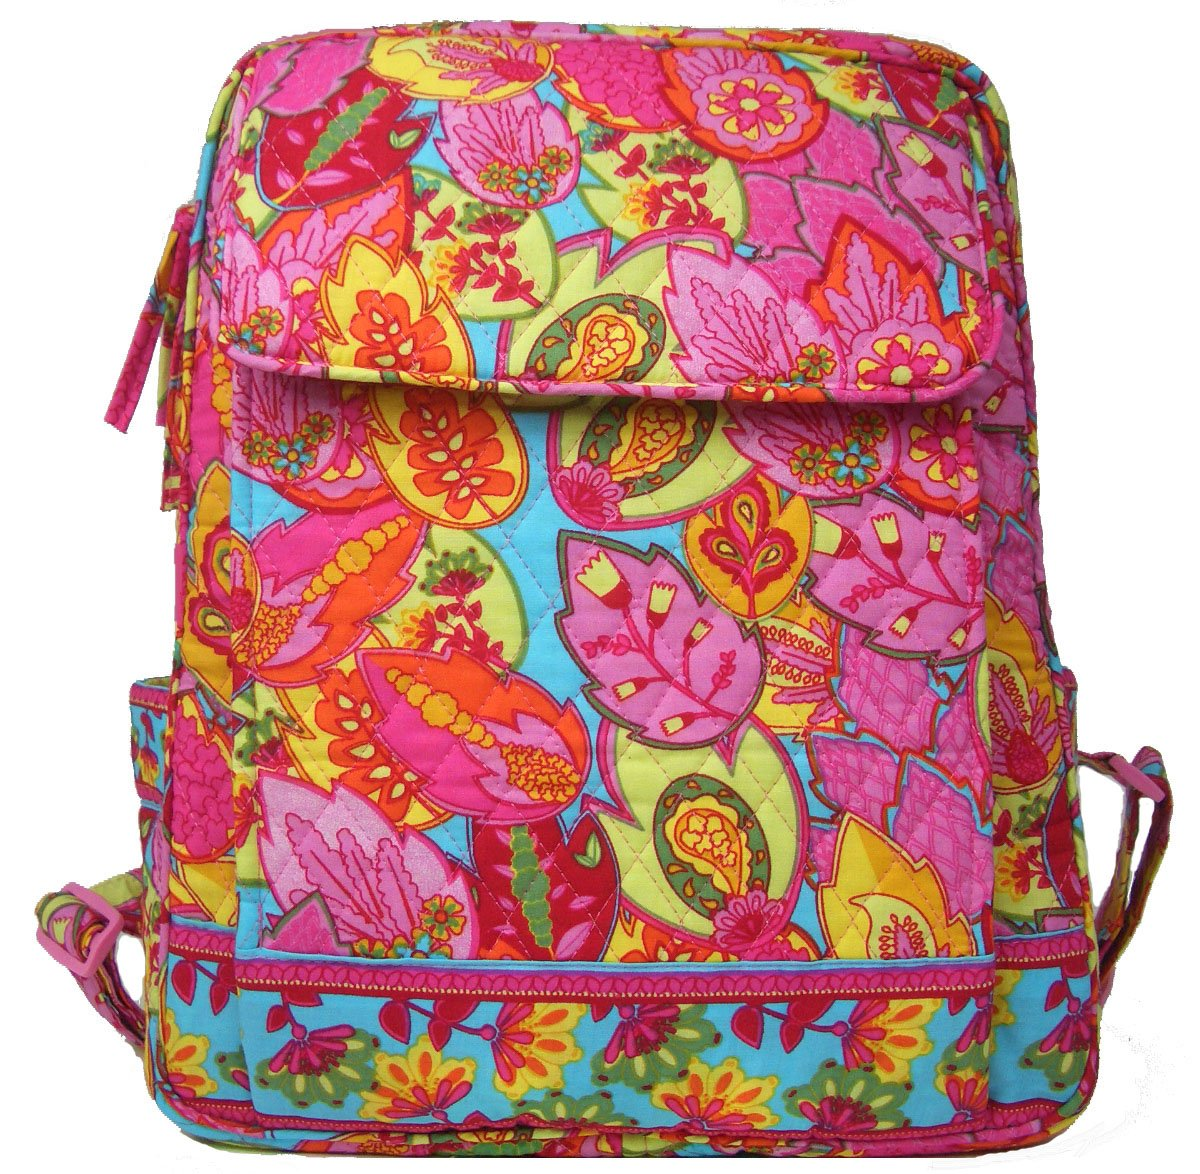 DIWI Large Backpack Campus Bookbag Schoolbag Laptop Backpack Quilted Cotton (Pink Turquoise)